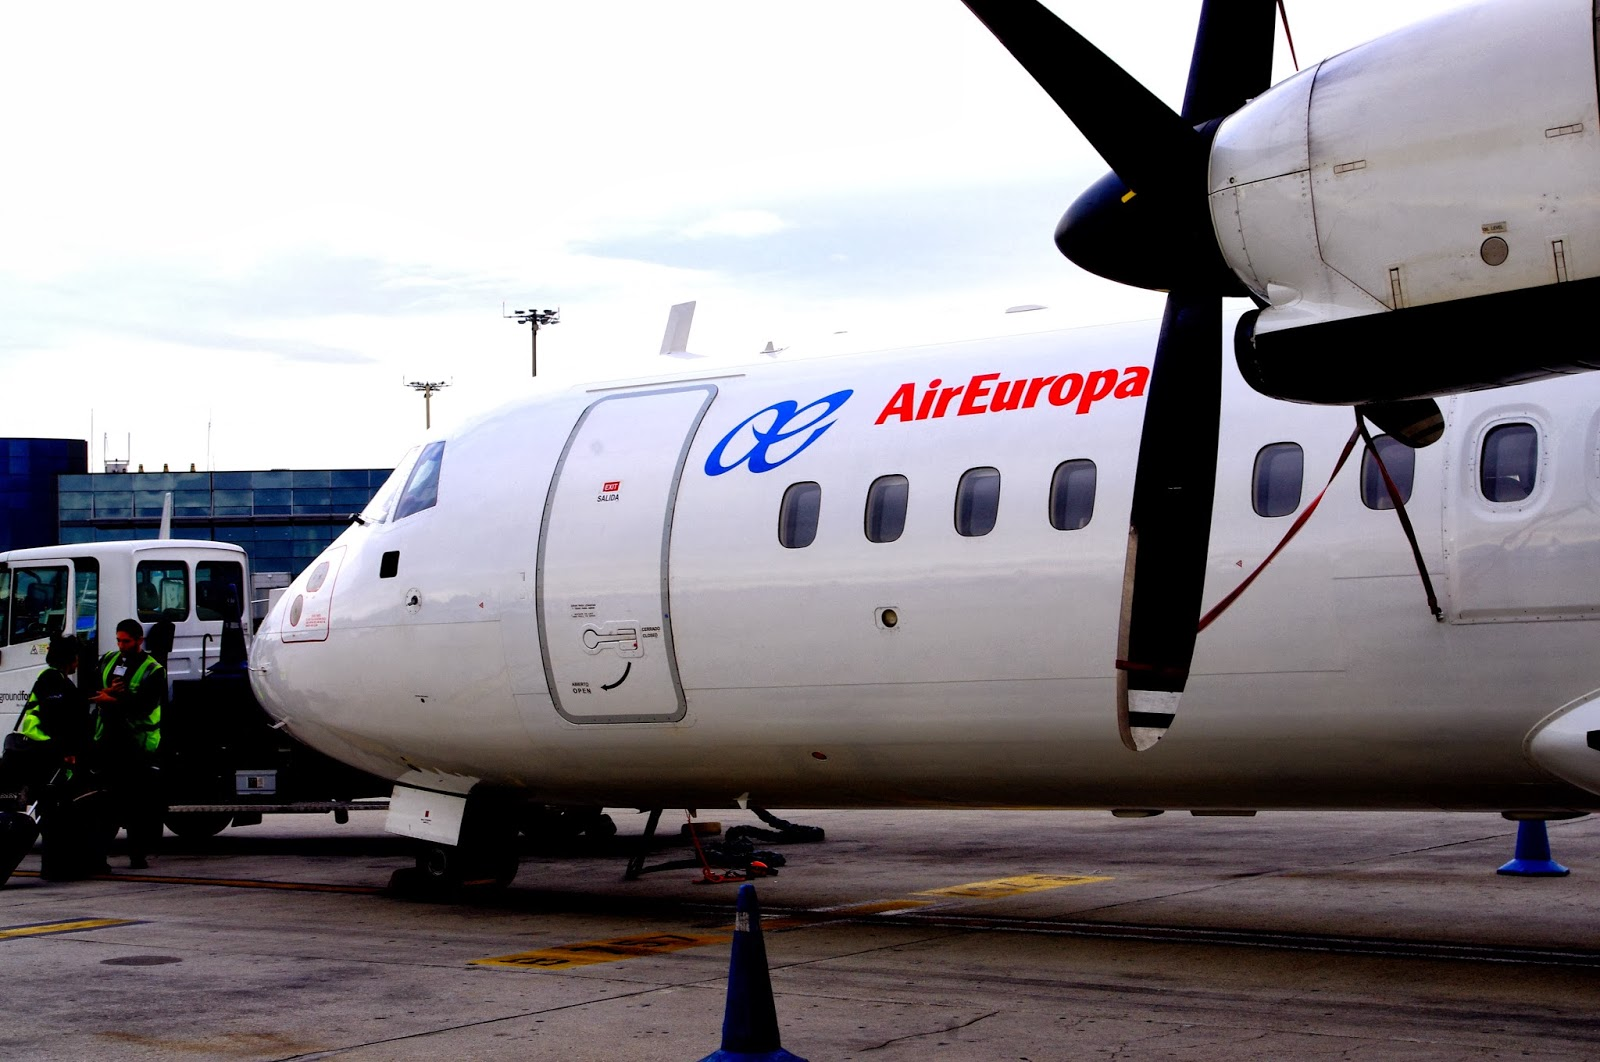 Air europa rompe el monopolio con nuevos vuelos a madrid for Air europa oficinas en madrid